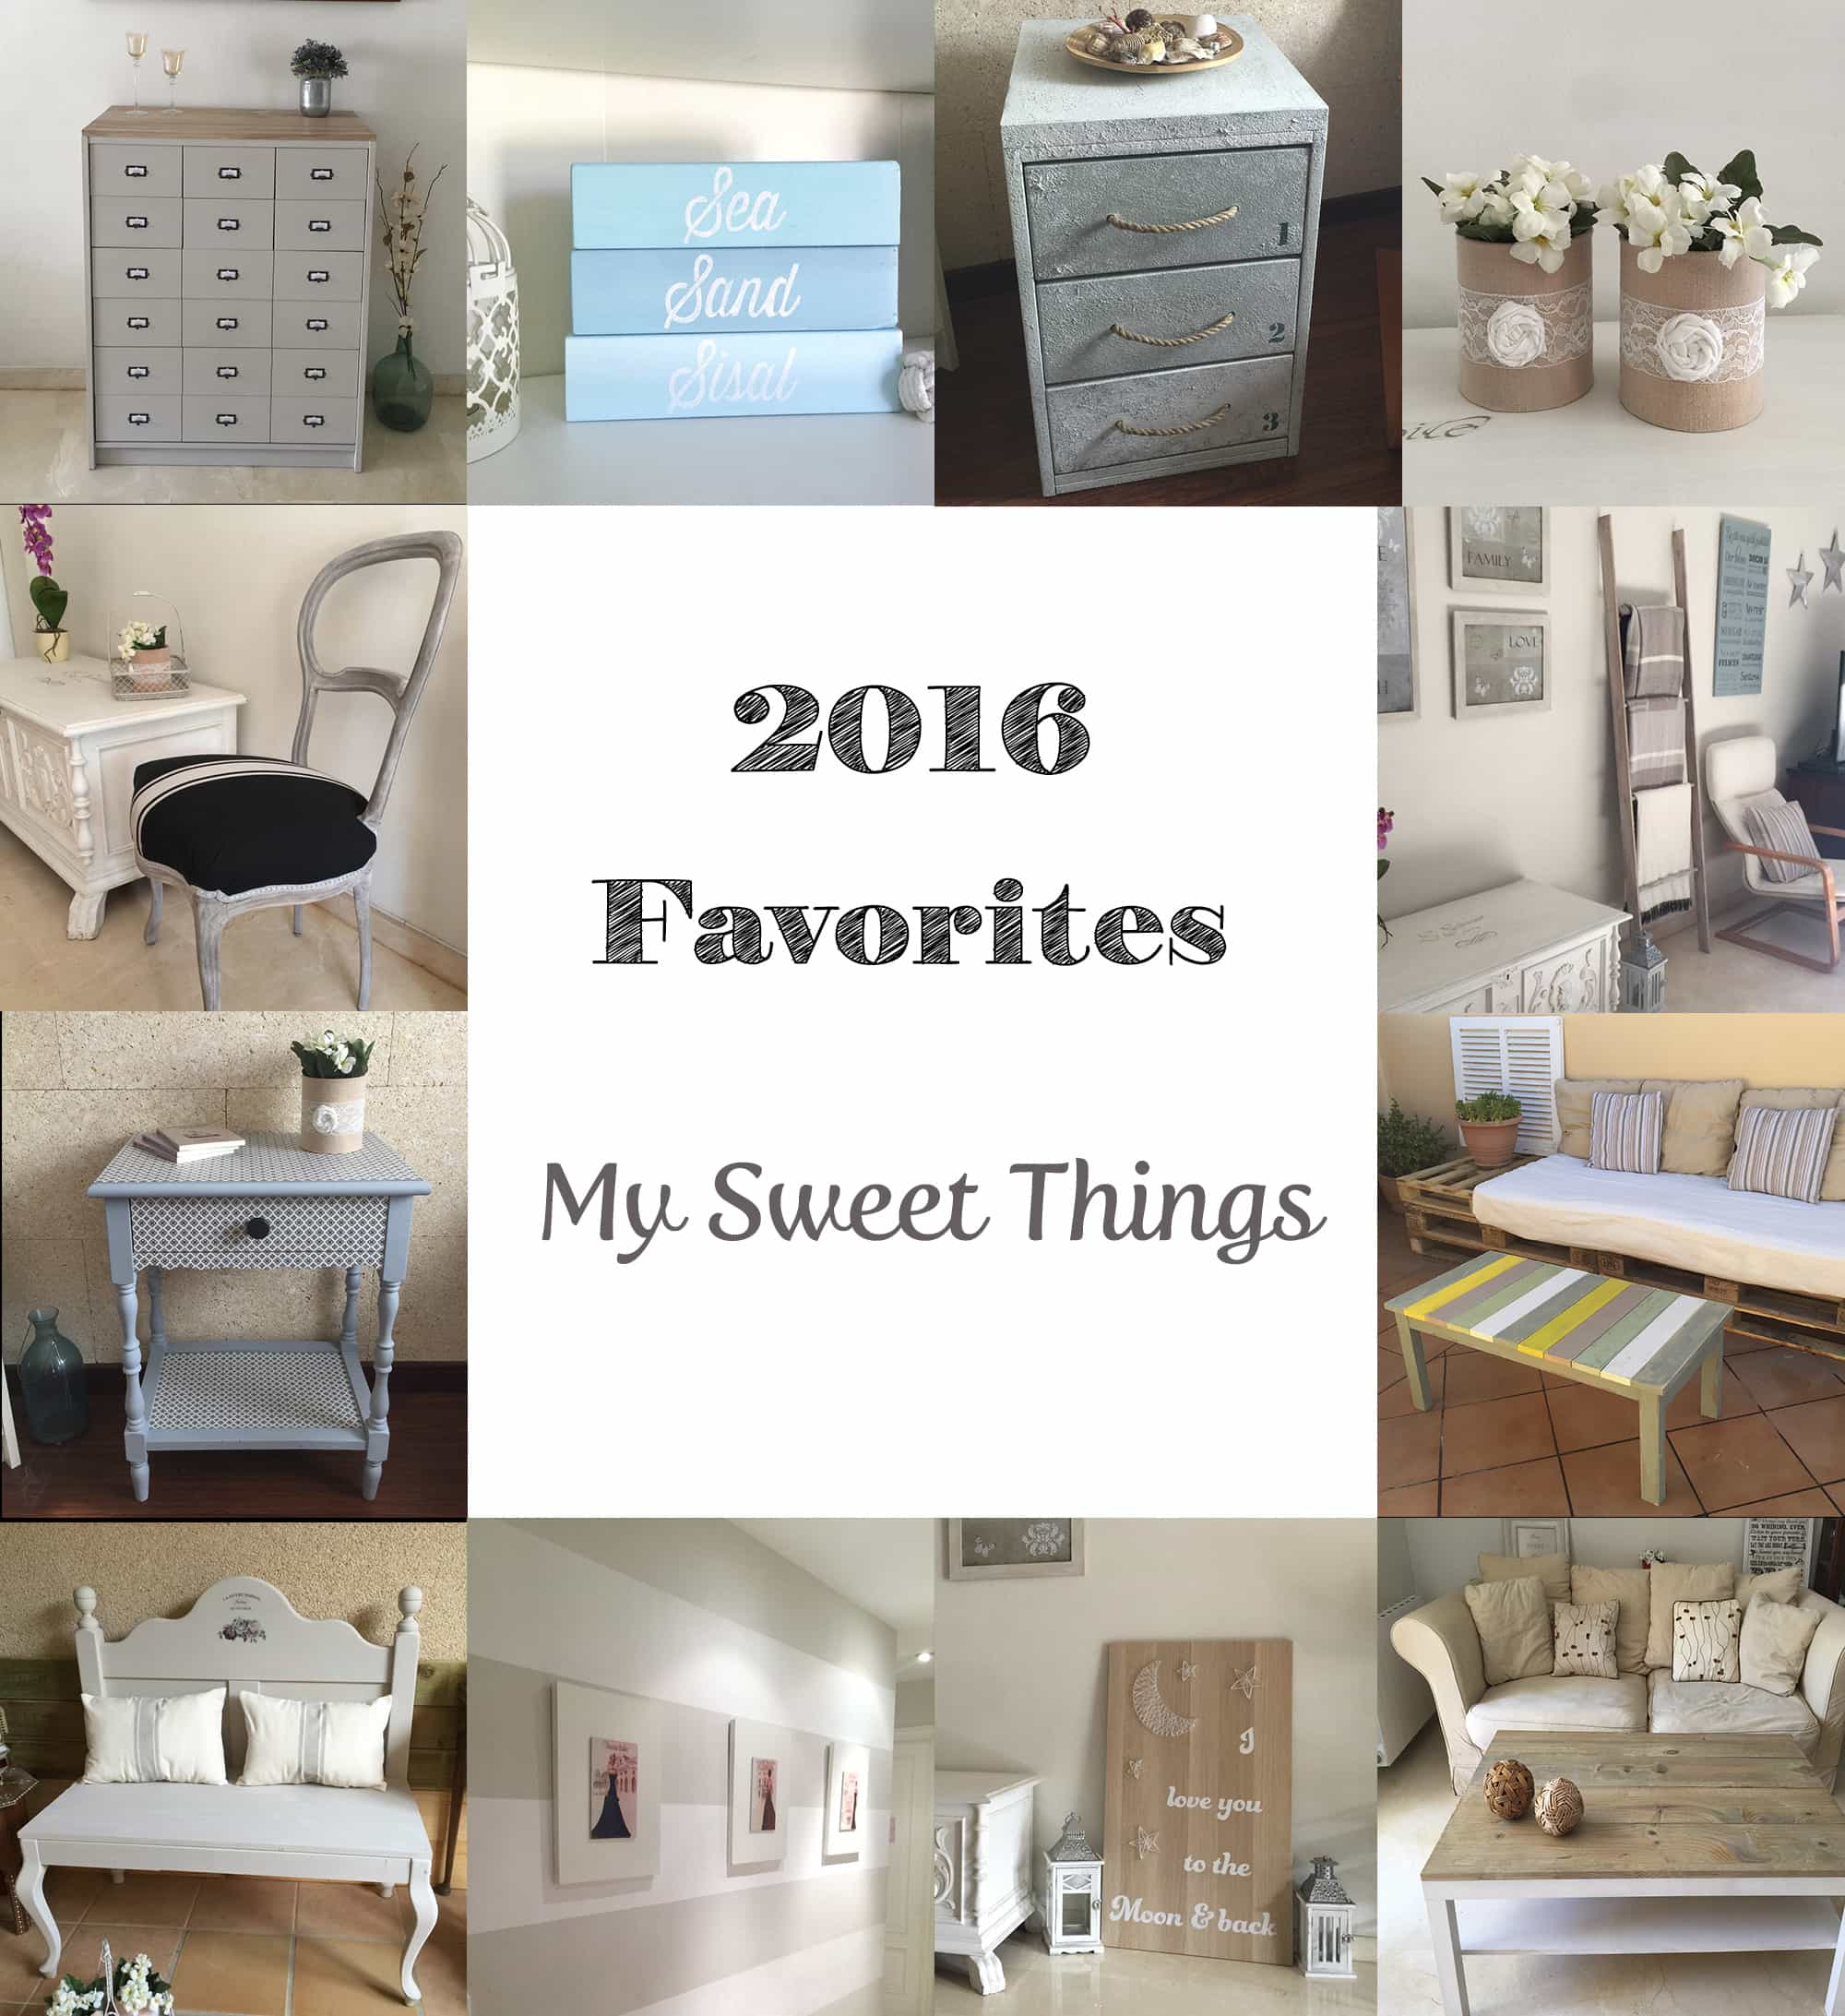 My 2016 Favorite Projects  ·  My Sweet Things